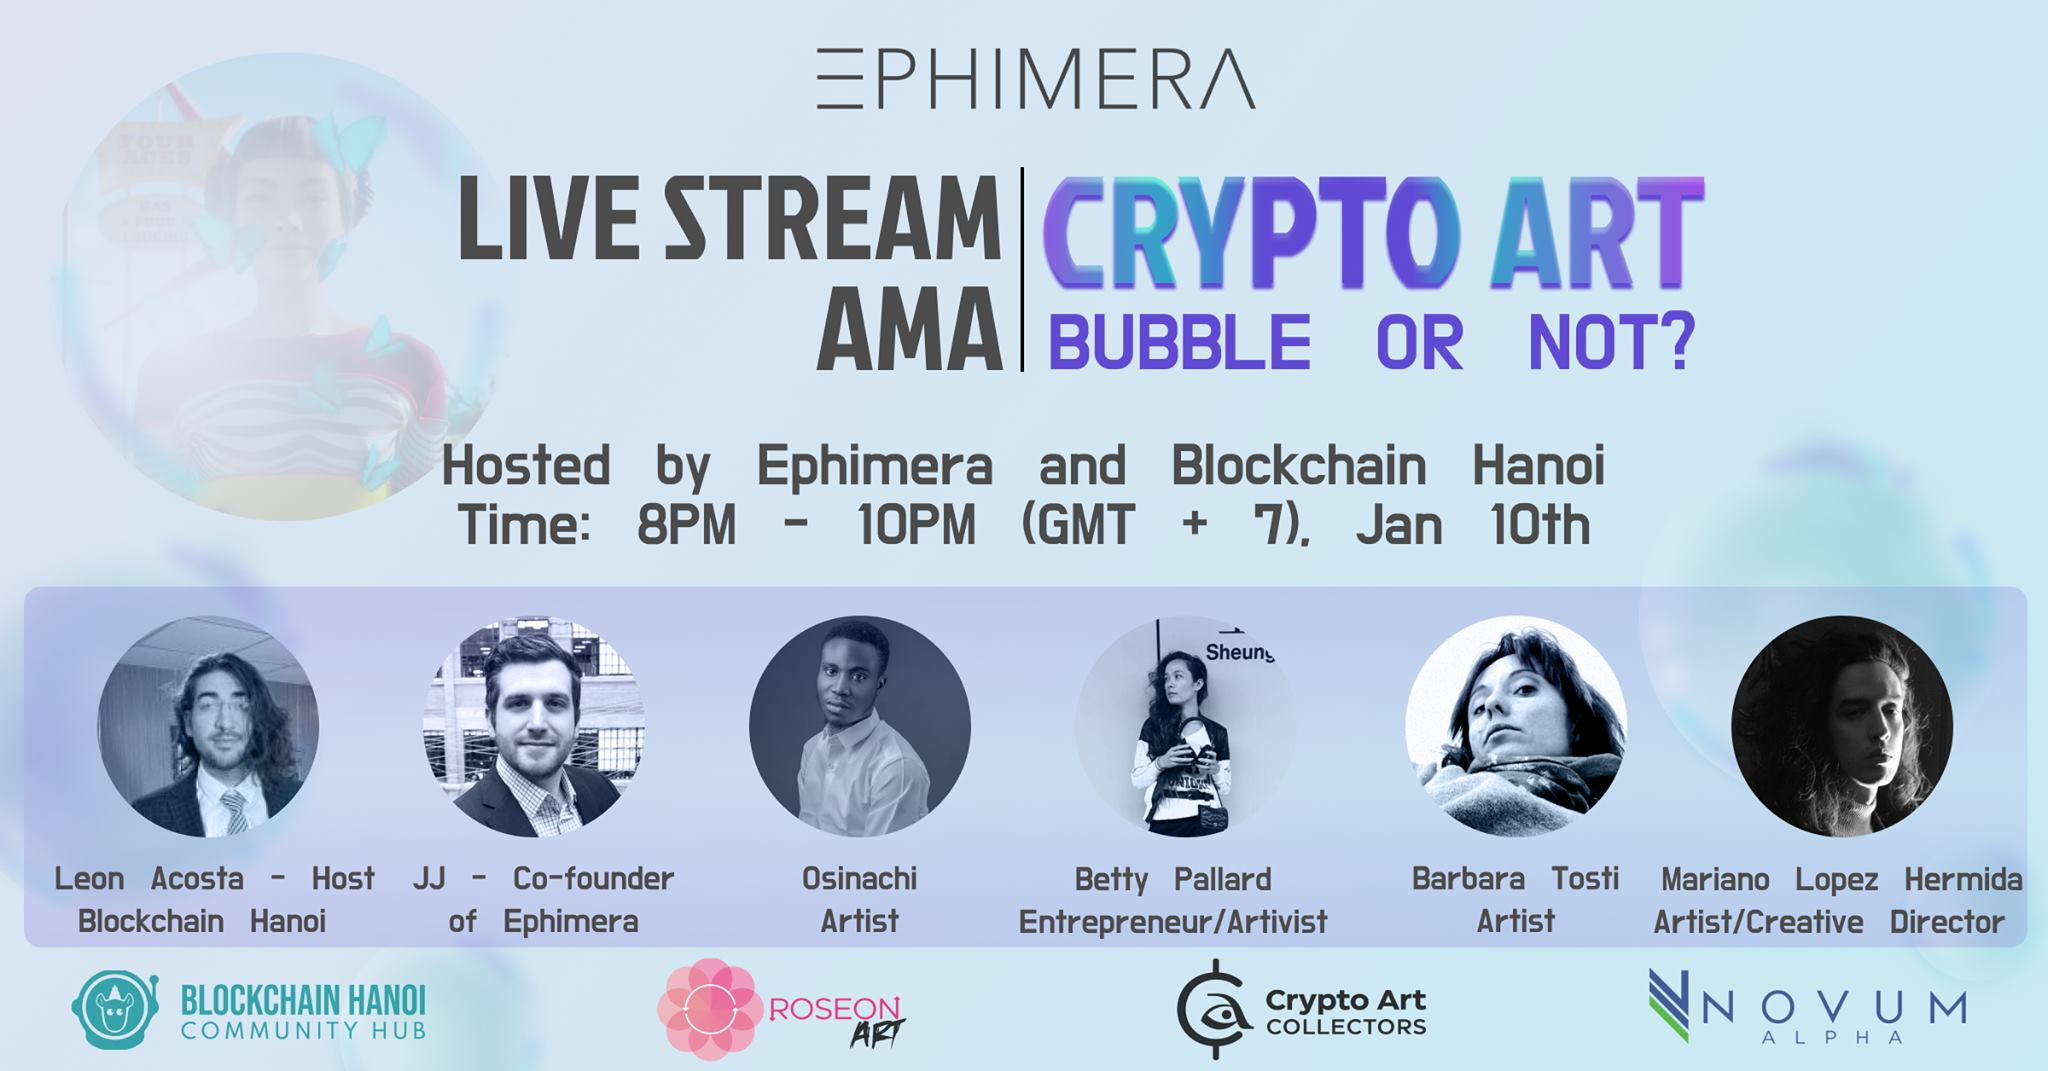 Crypto Art: Bubble or Not?